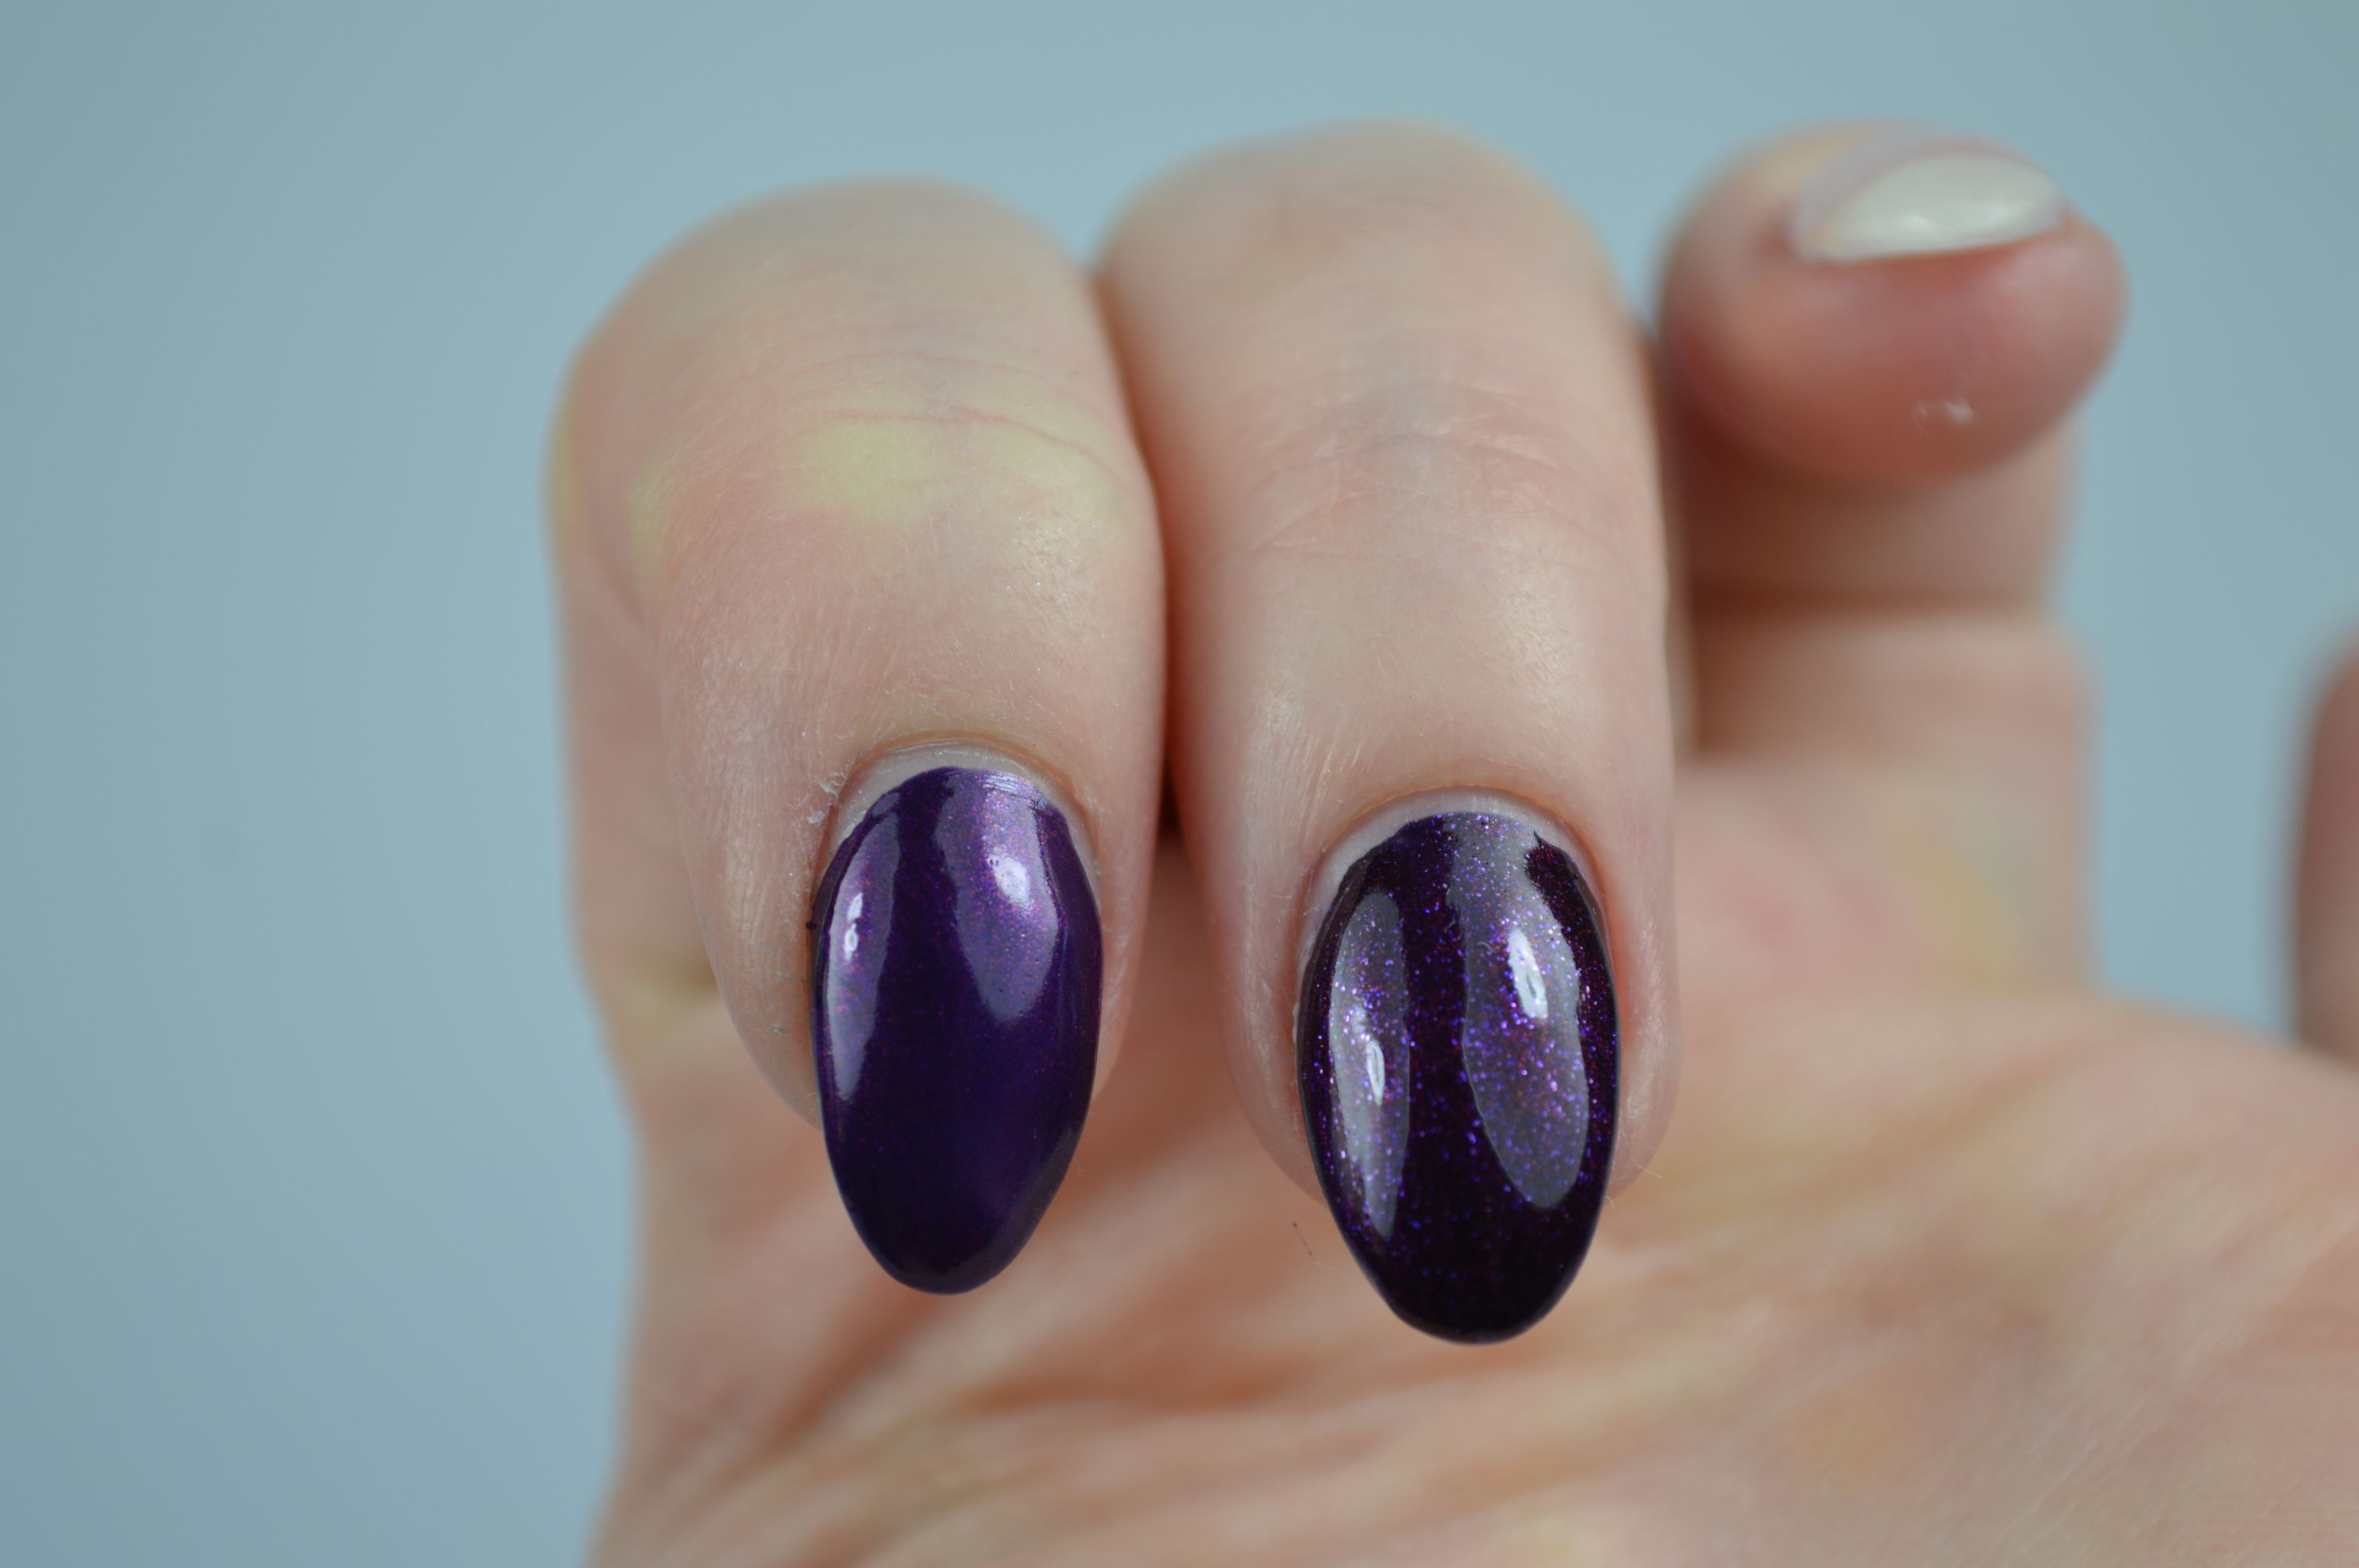 P2 Sensual Purple Vergleich Chanel Taboo Nagellack Dupe Swatches